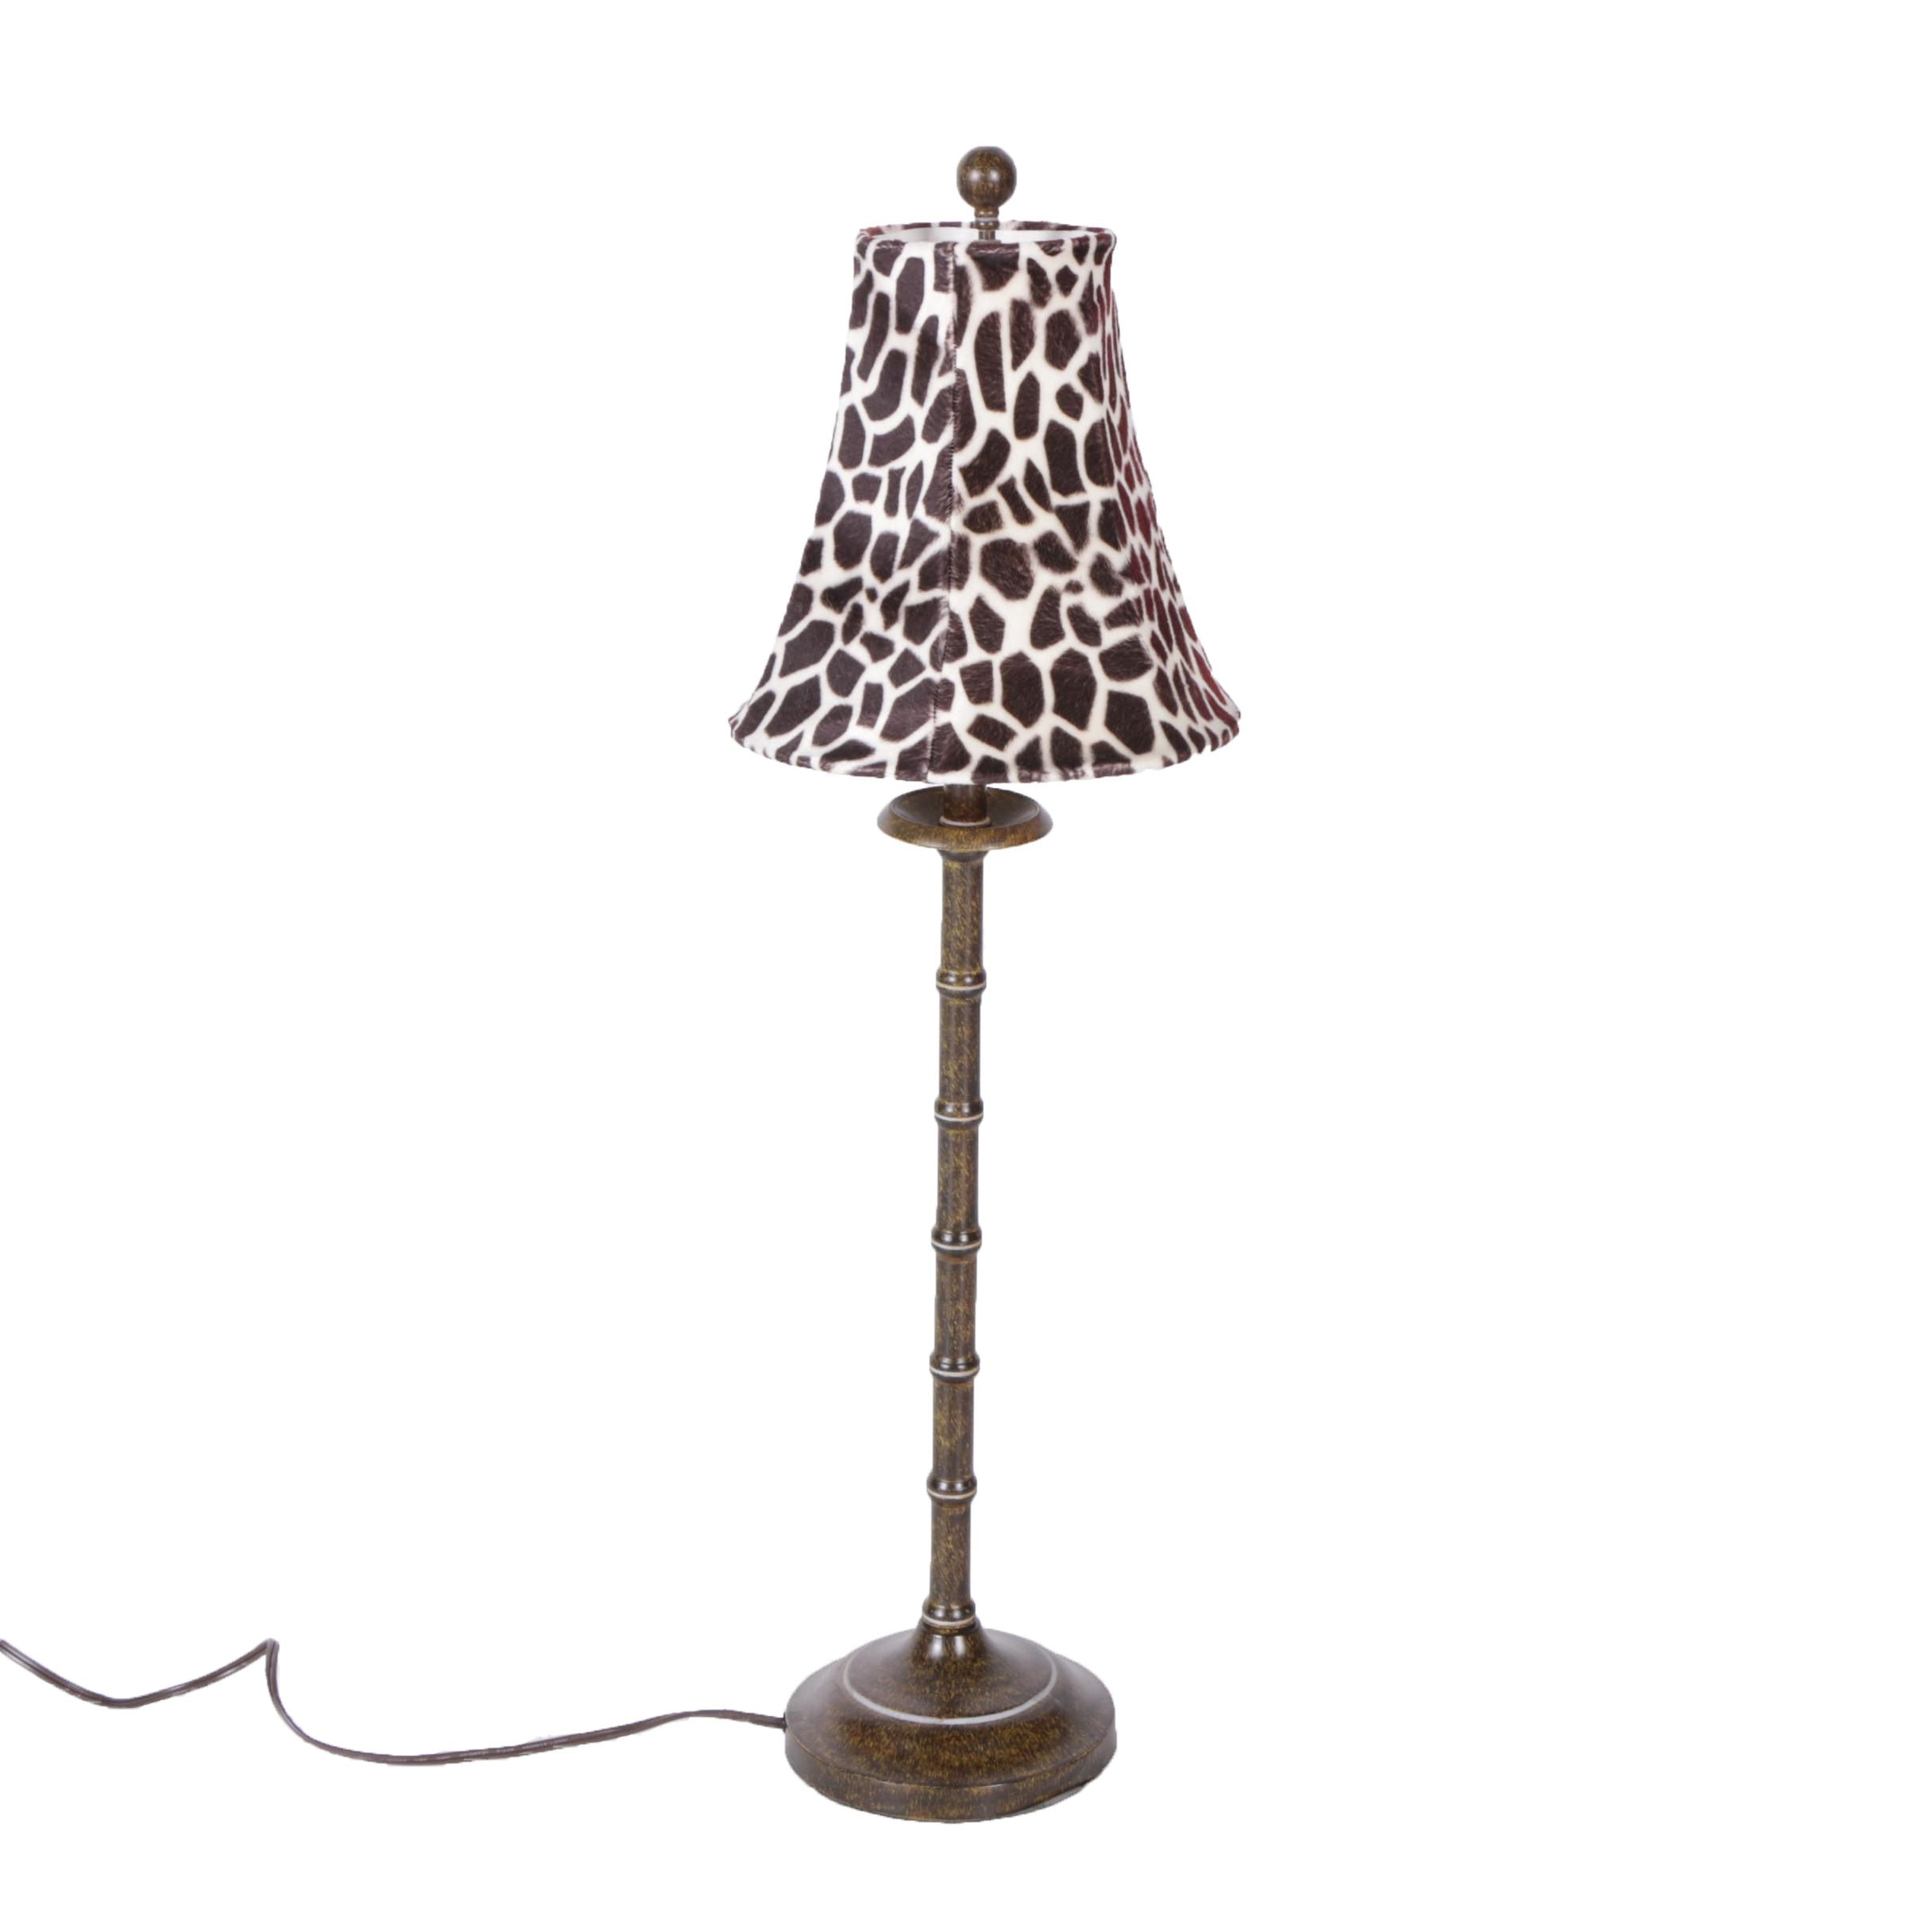 Metal Candlestick Style Table Lamp with Giraffe Print Shade